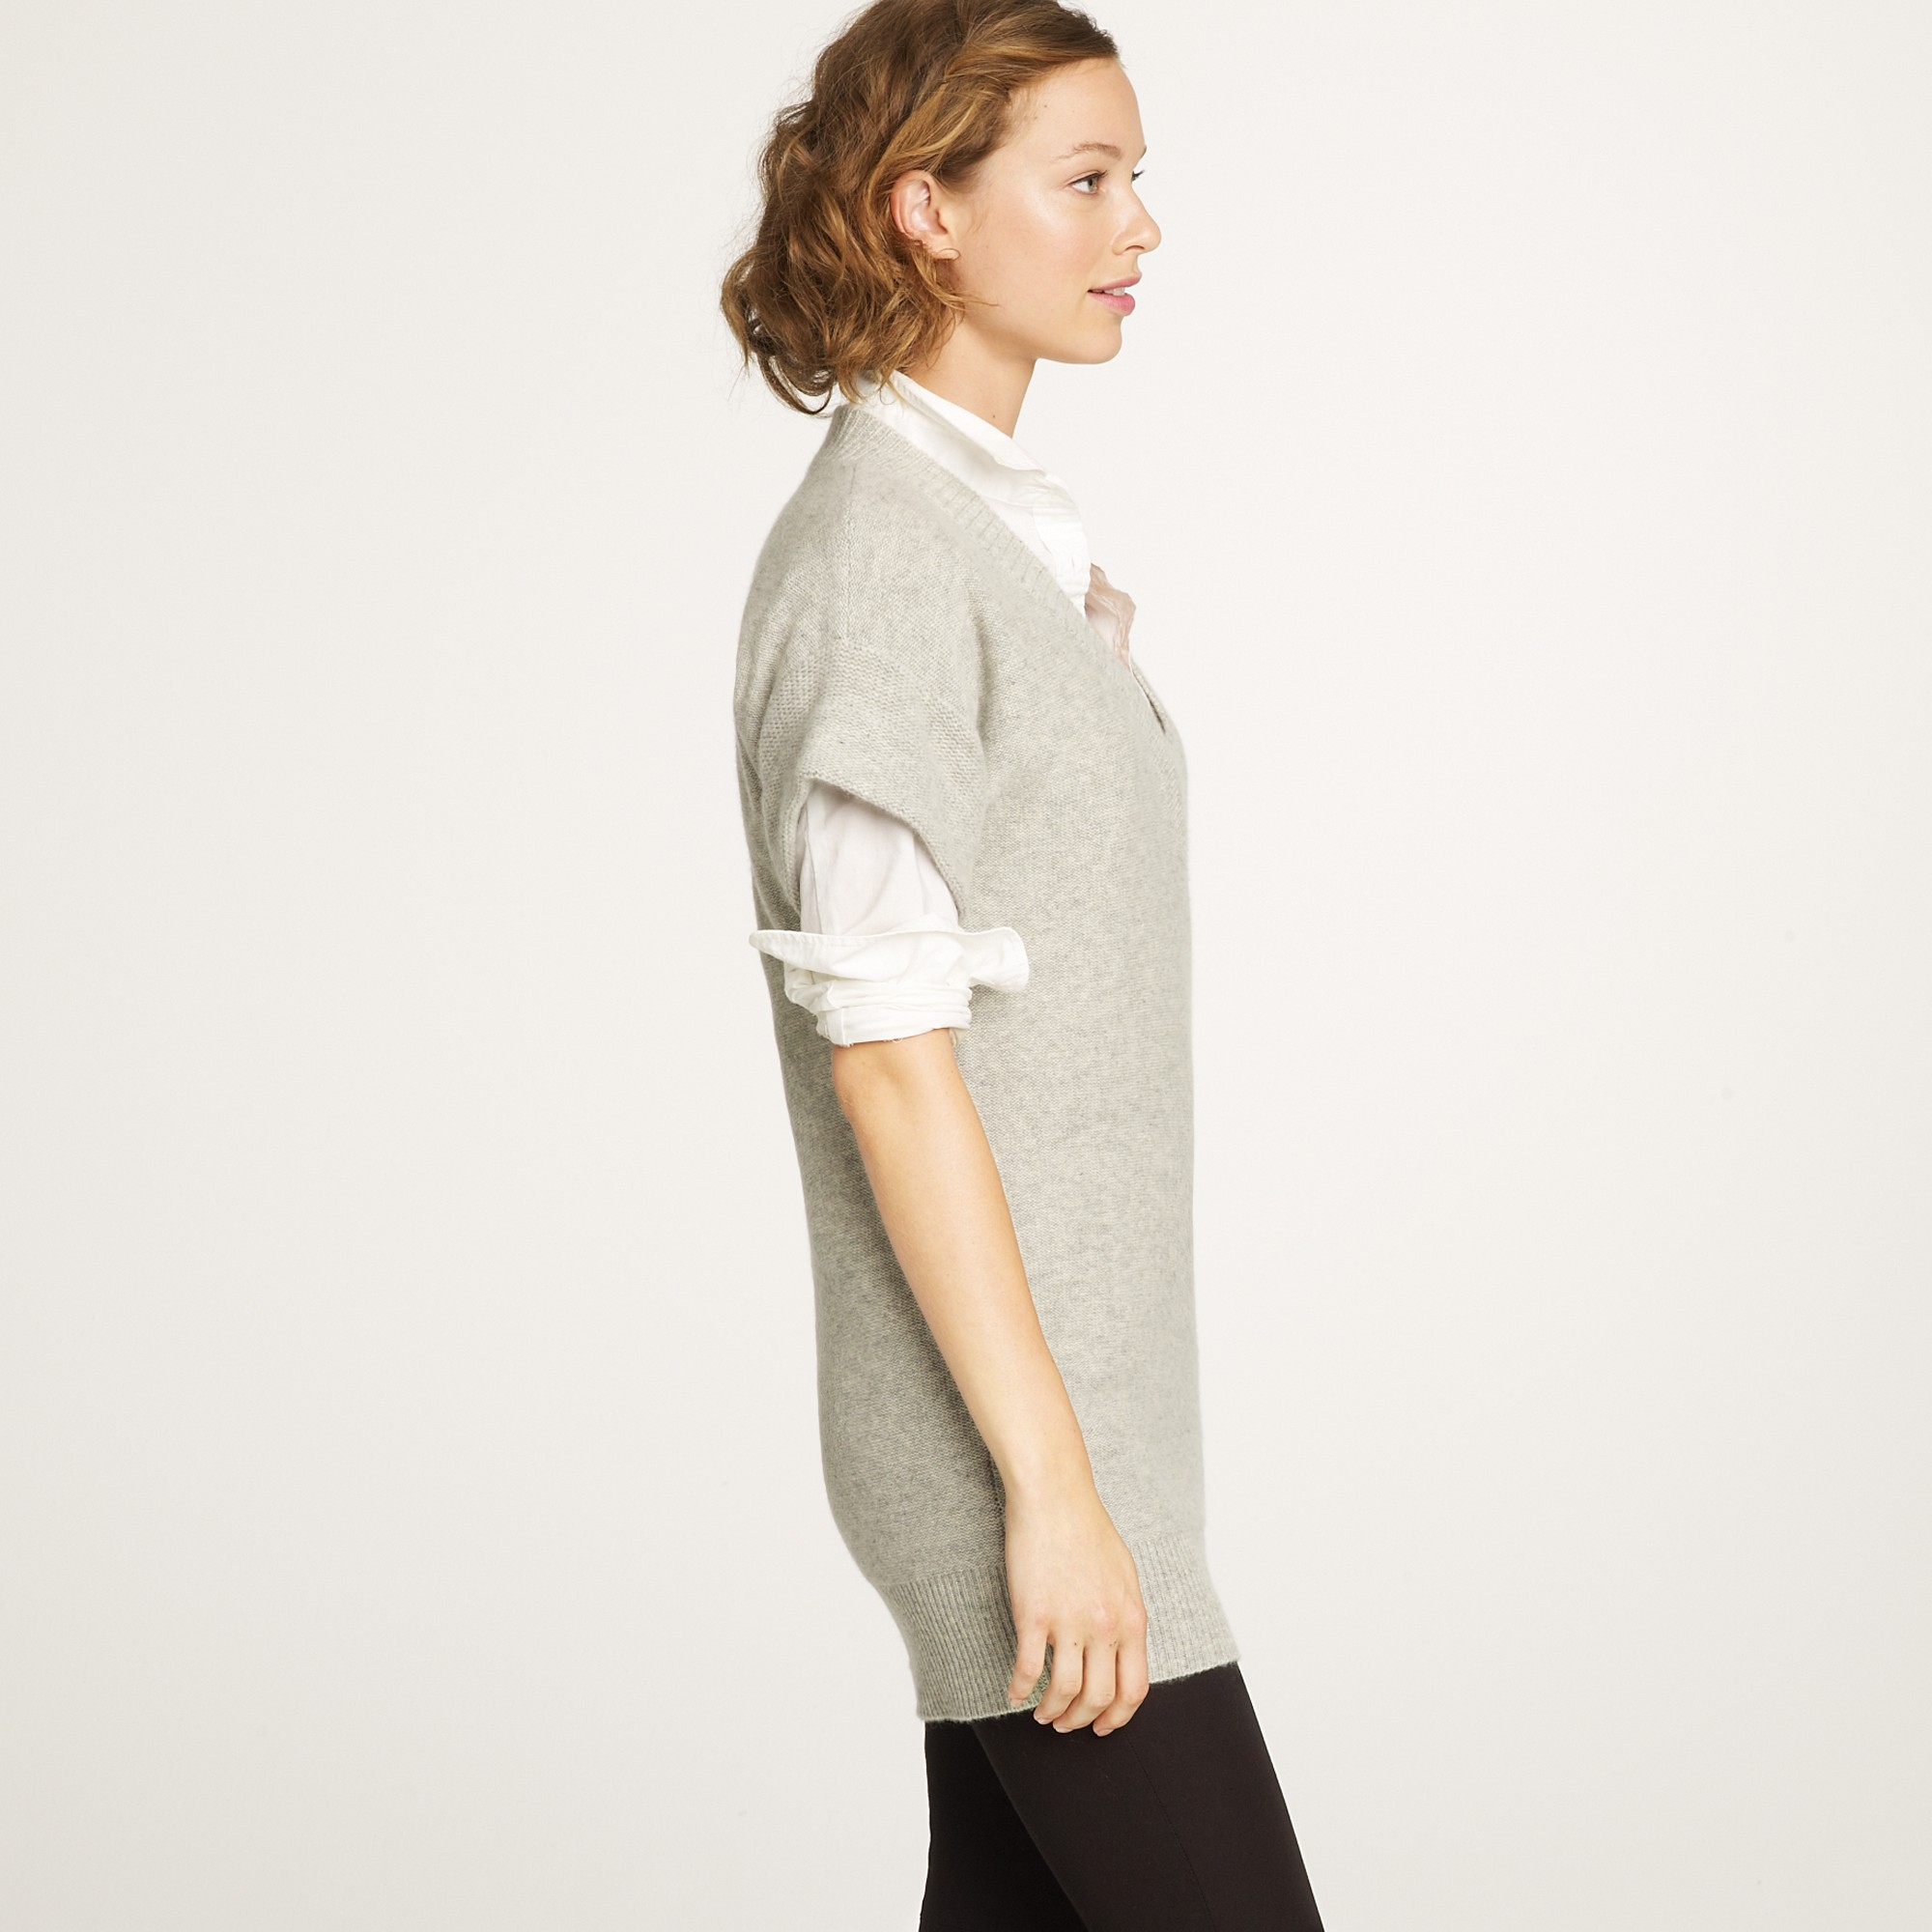 J.crew Cashmere Short-sleeve V-neck Sweater in Gray | Lyst